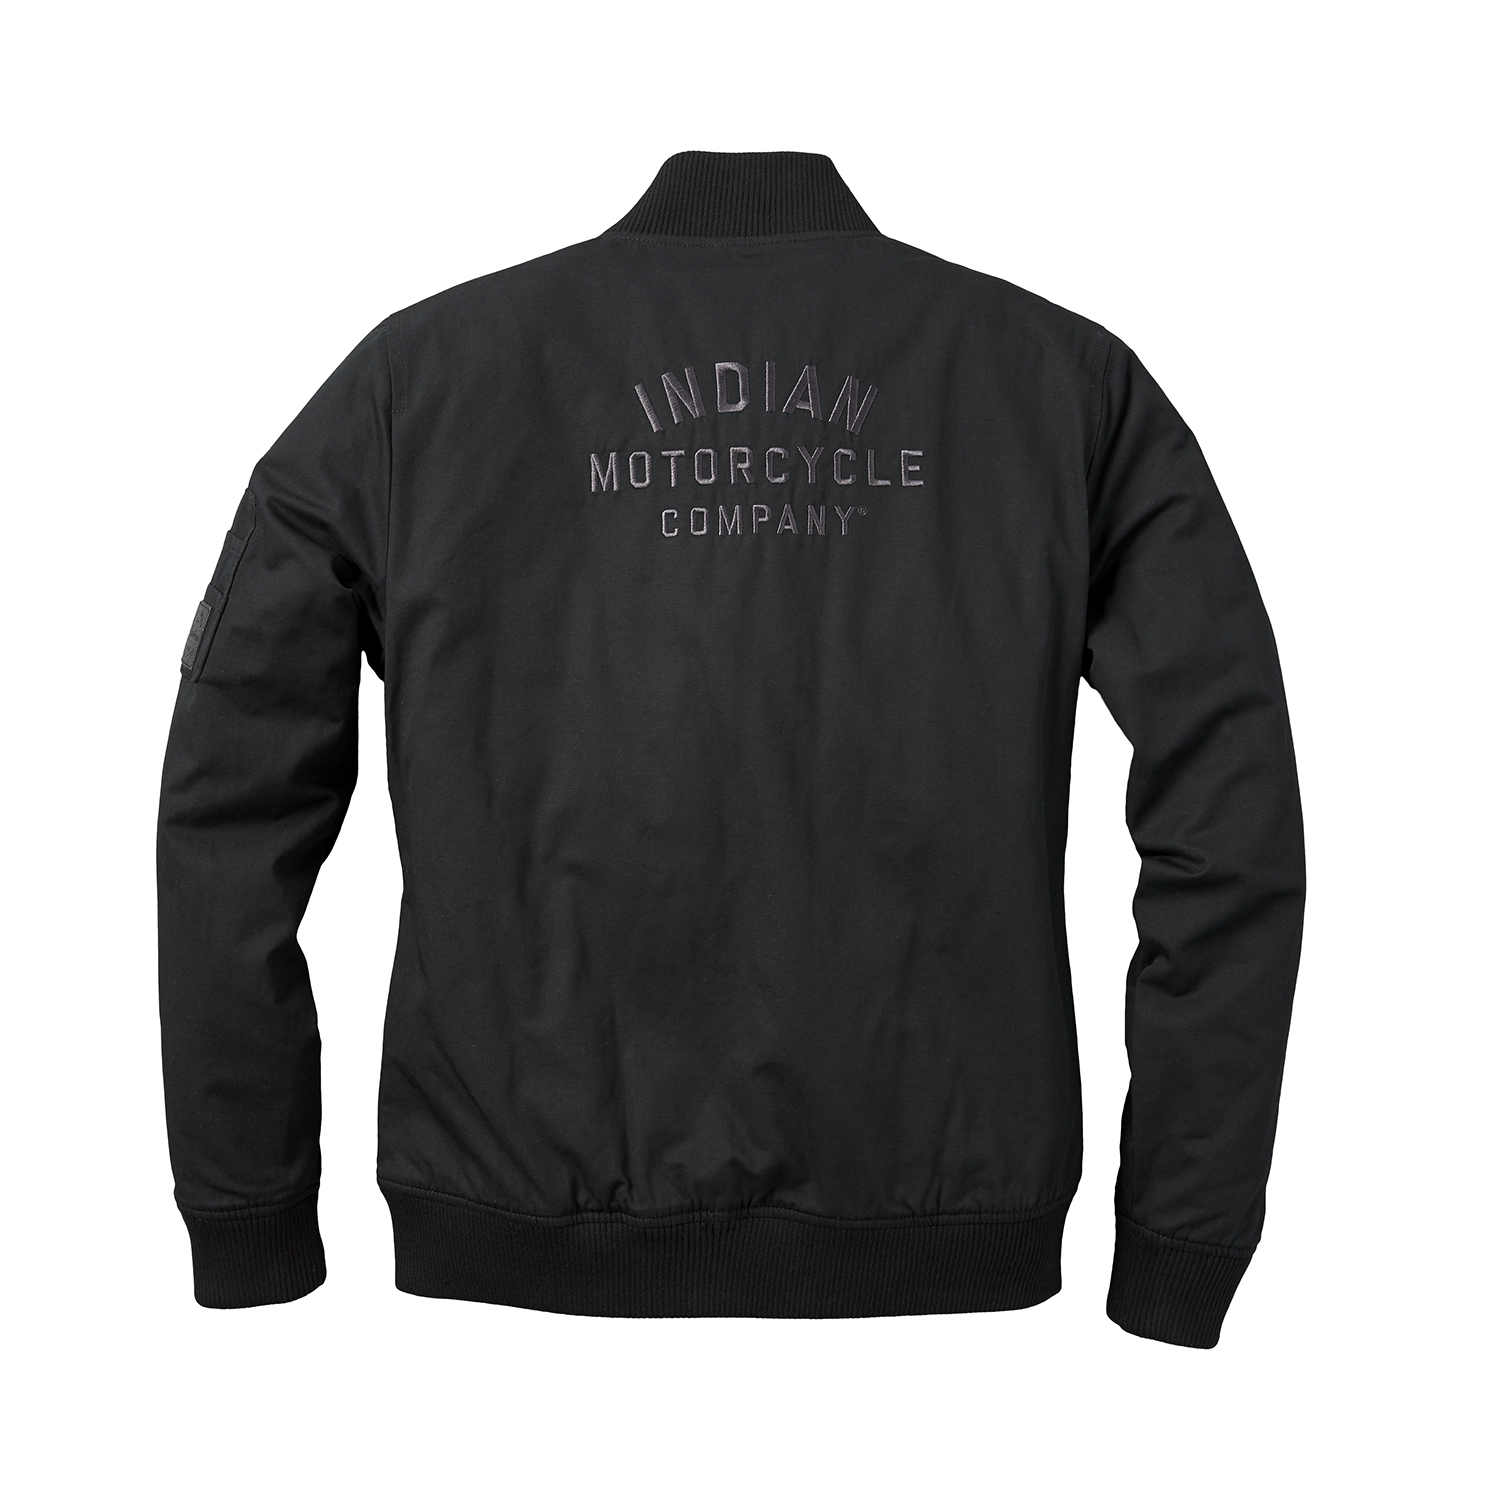 miniature 11 - Indian Motorcycle Women's Casual Bomber Jacket, Black